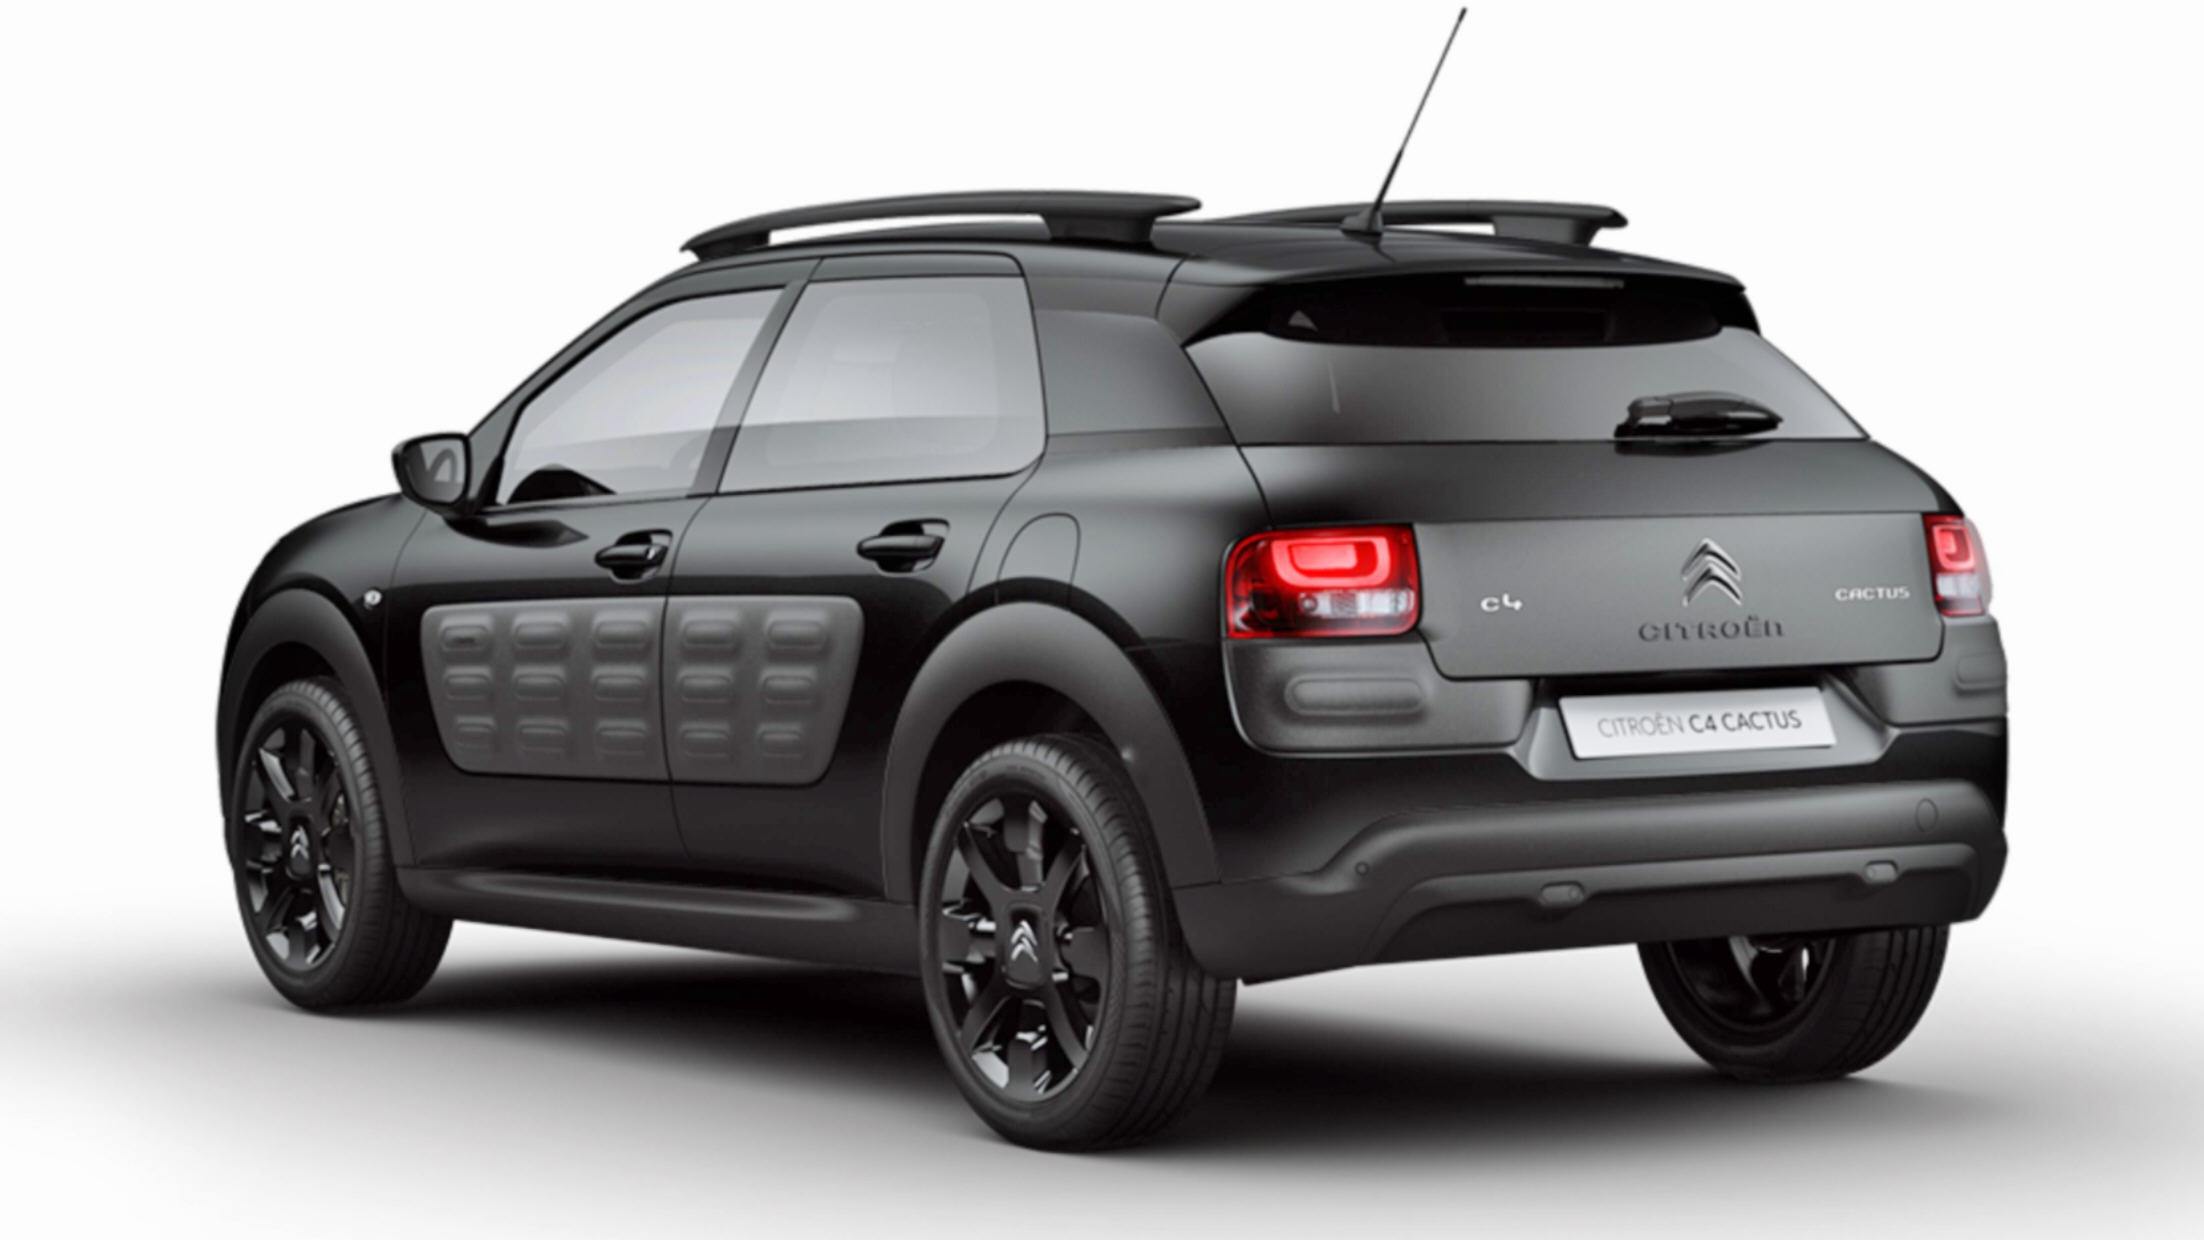 citroen cactus 4x4. Black Bedroom Furniture Sets. Home Design Ideas